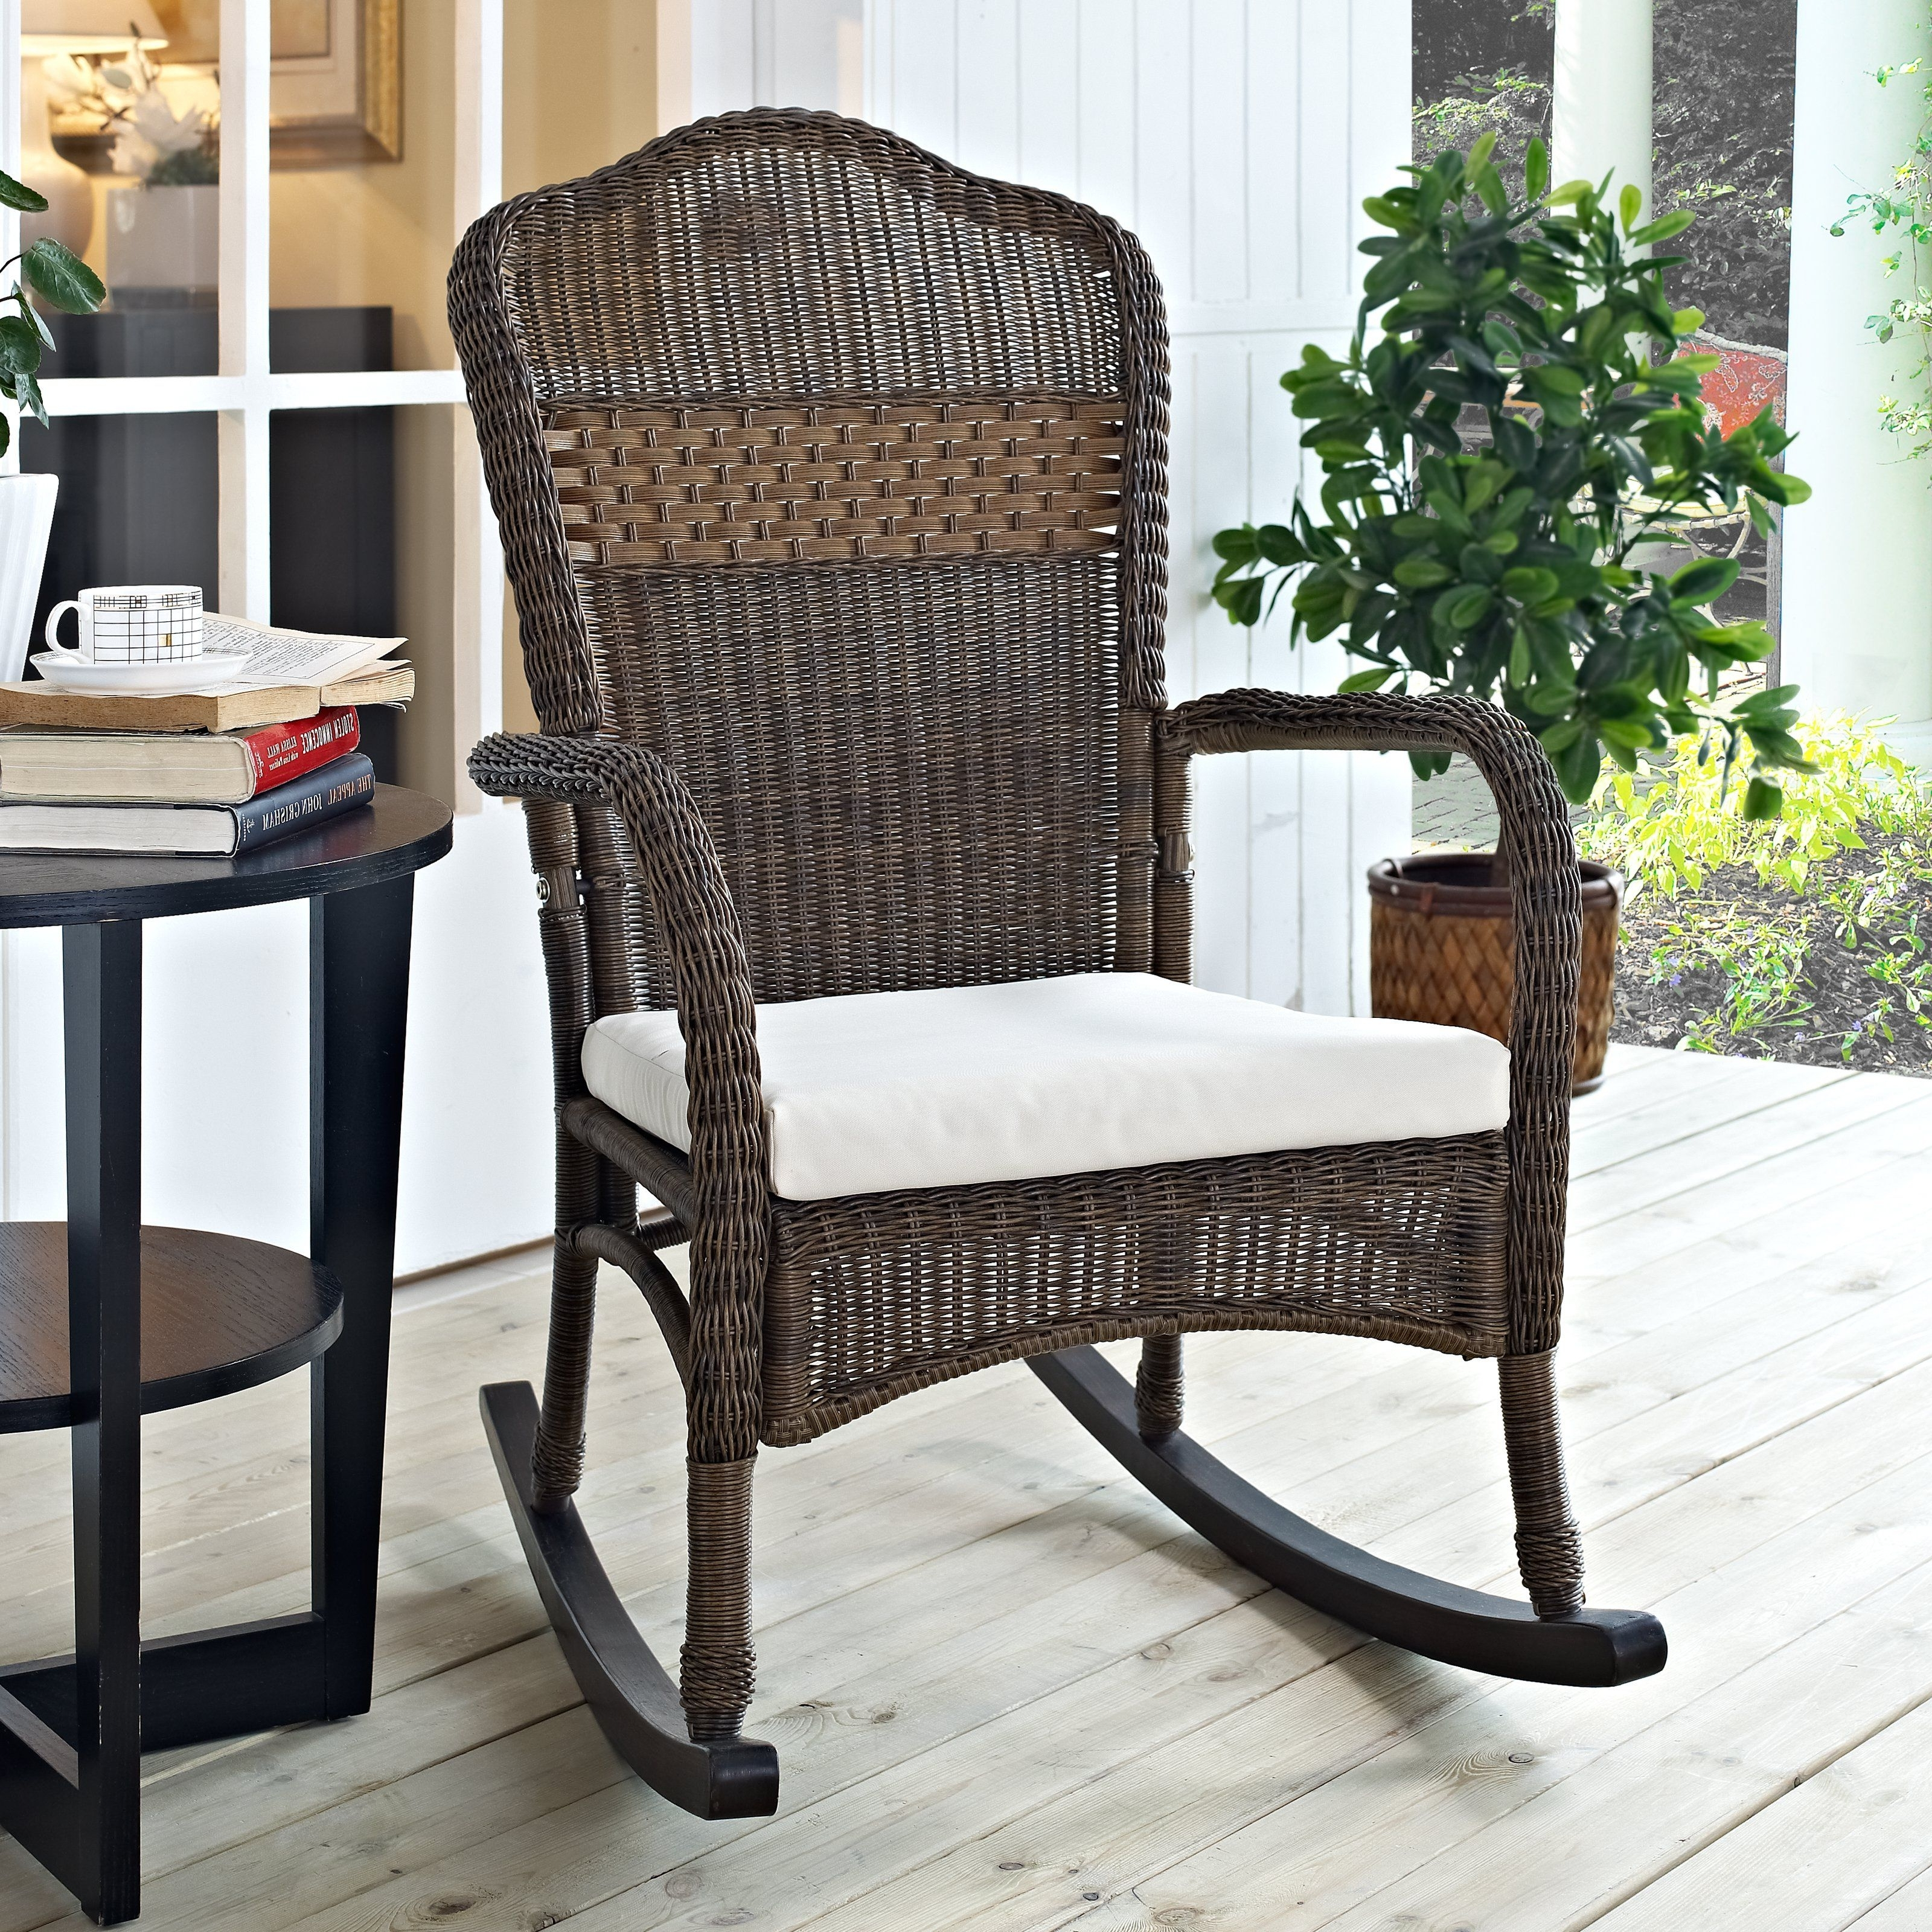 Best And Newest Outdoor Coral Coast Mocha Resin Wicker Rocking Chair With Beige Intended For Outdoor Wicker Rocking Chairs With Cushions (View 1 of 15)